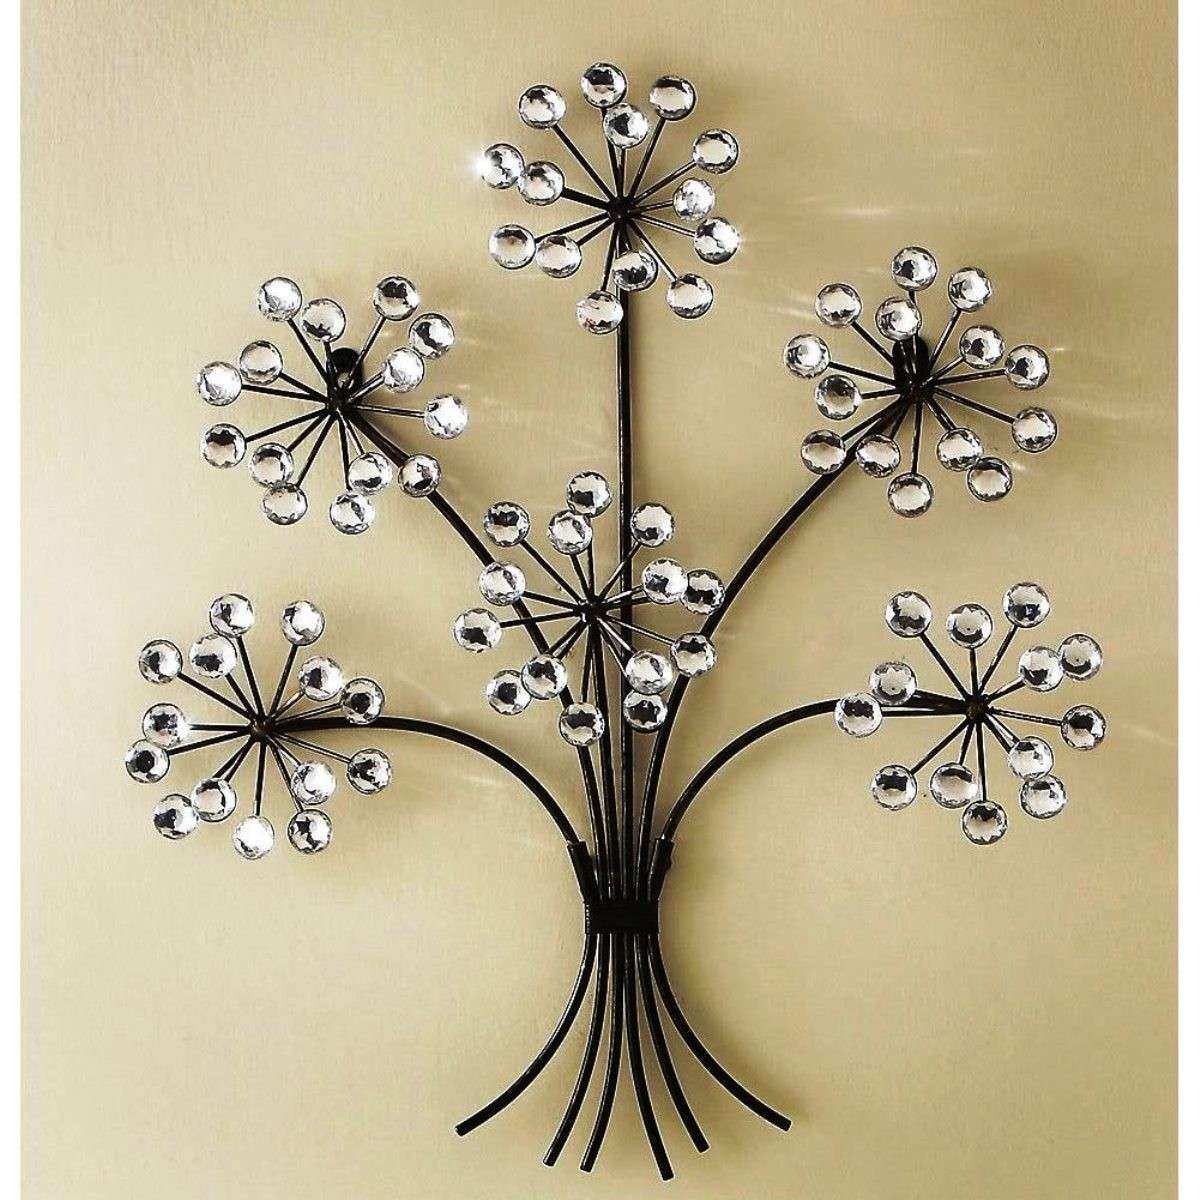 Metal Pictures for Wall Lovely Beautiful Metal Wall Decor Ideas for ...